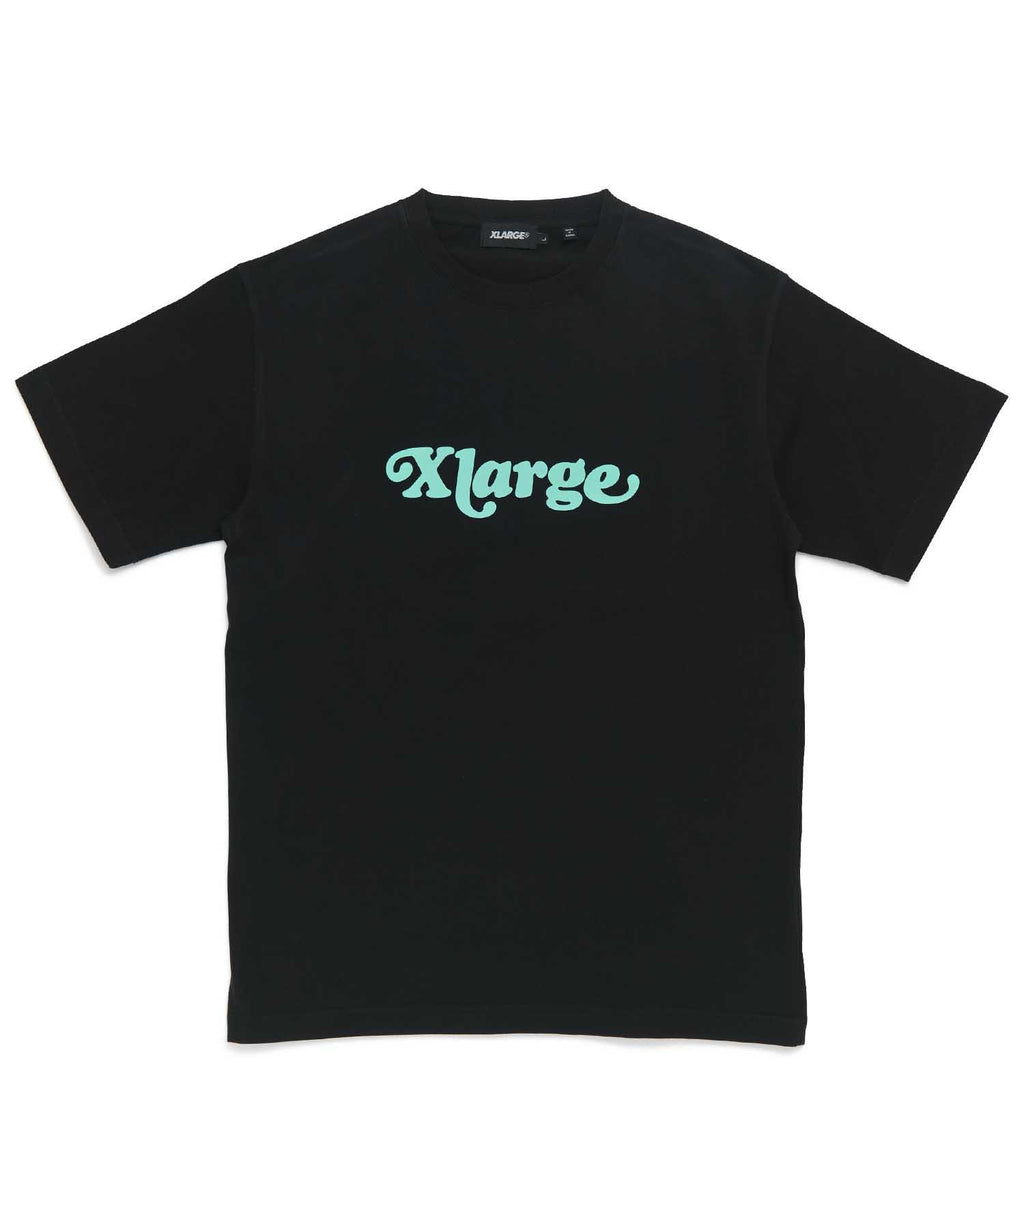 S/S TEE TAIL LOGO - BLACK